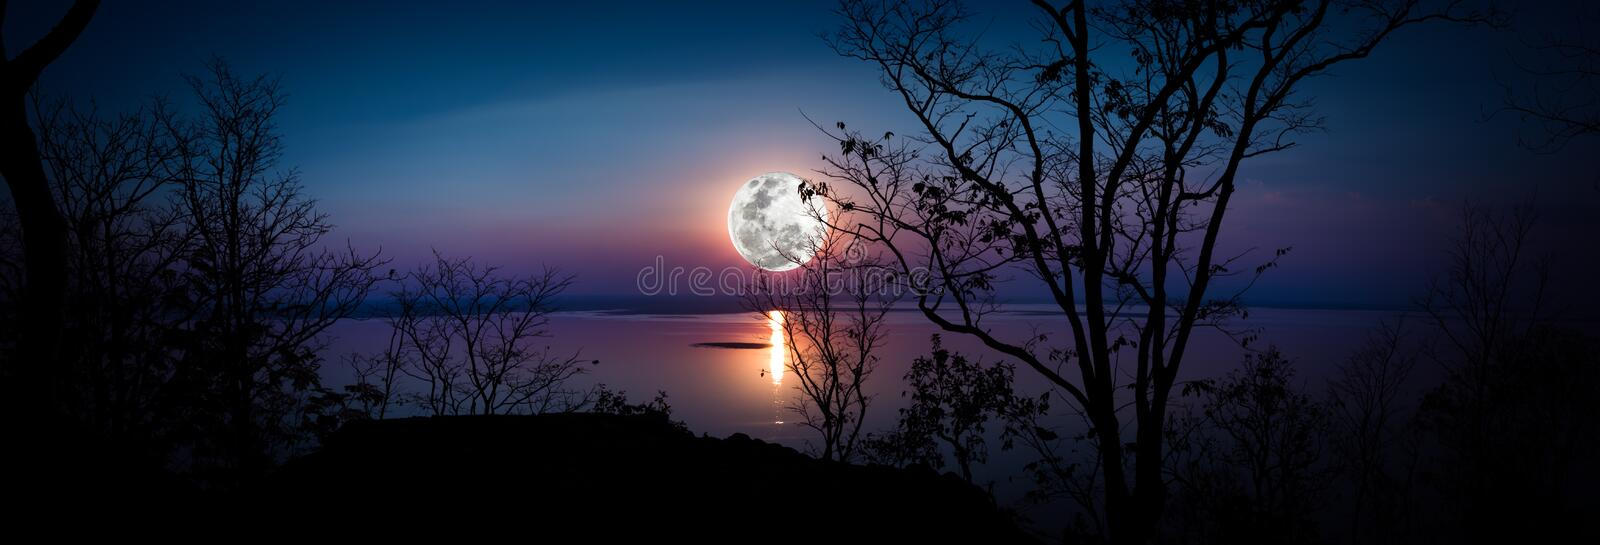 Panorama. Silhouettes of woods and beautiful moonrise, bright full moon would make a great picture. Outdoors. royalty free stock photography